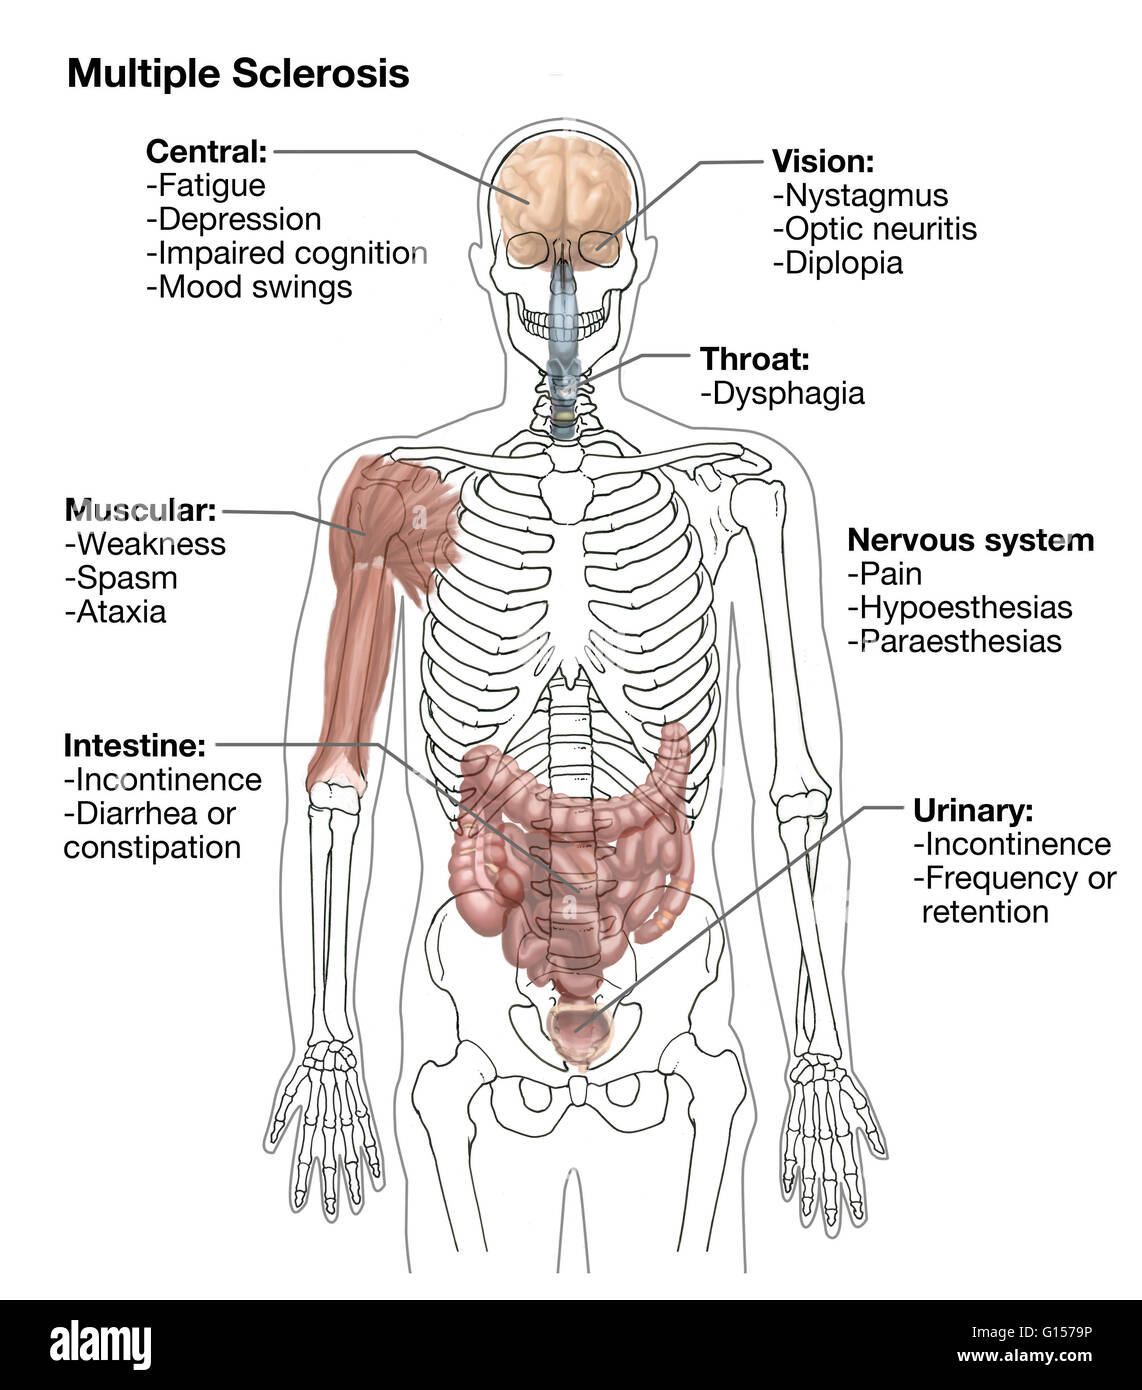 Illustration Showing Symptoms Of Multiple Sclerosis In Human Anatomy